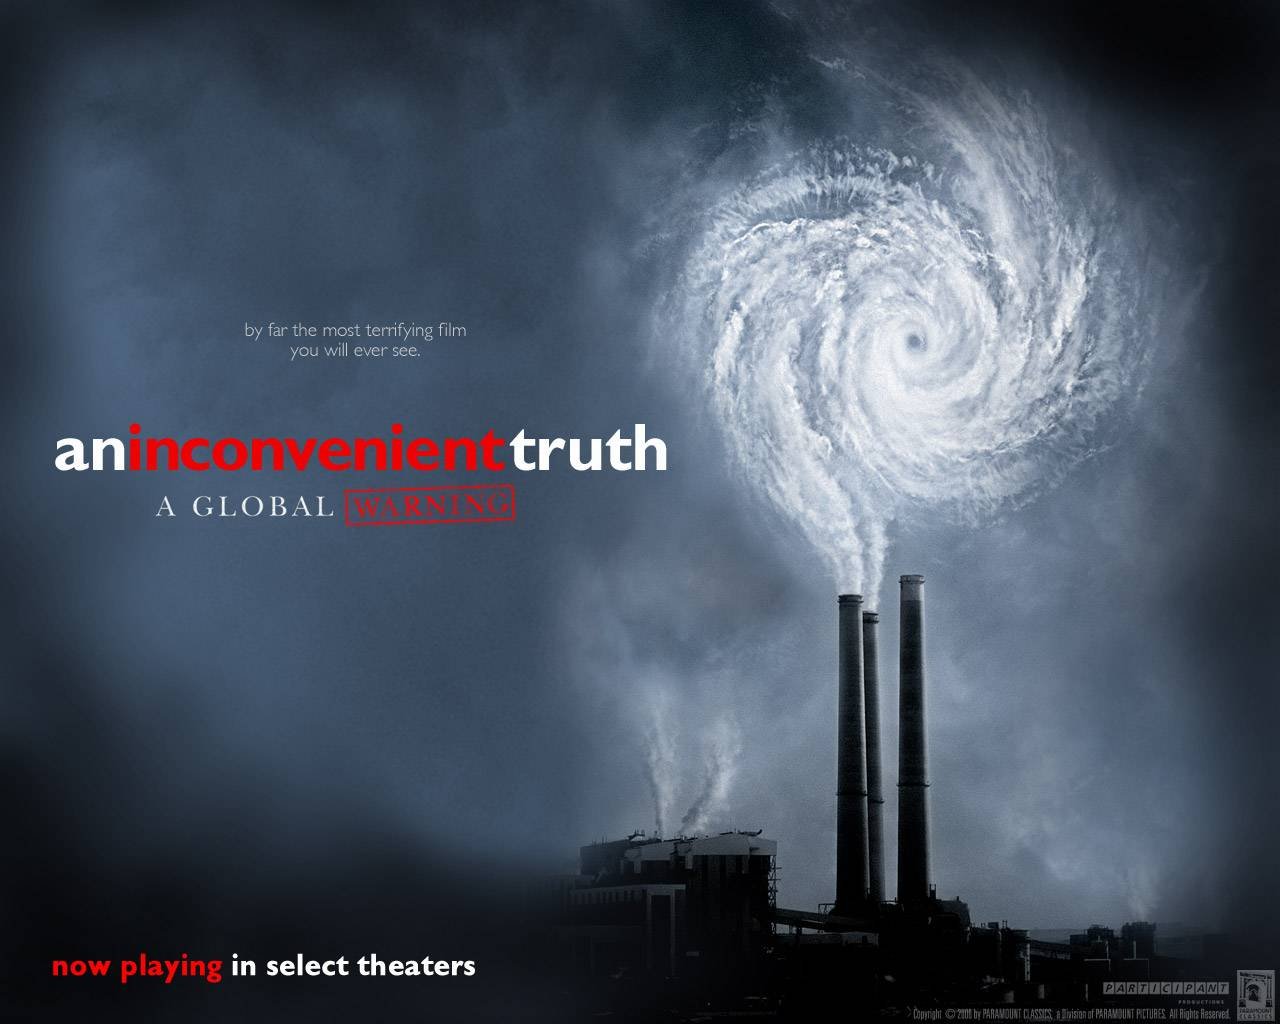 an inconvenient truth by al gore Directed by bonni cohen, jon shenk with al gore, george w bush, john kerry, marco krapels a decade after an inconvenient truth (2006) brought climate change to the.